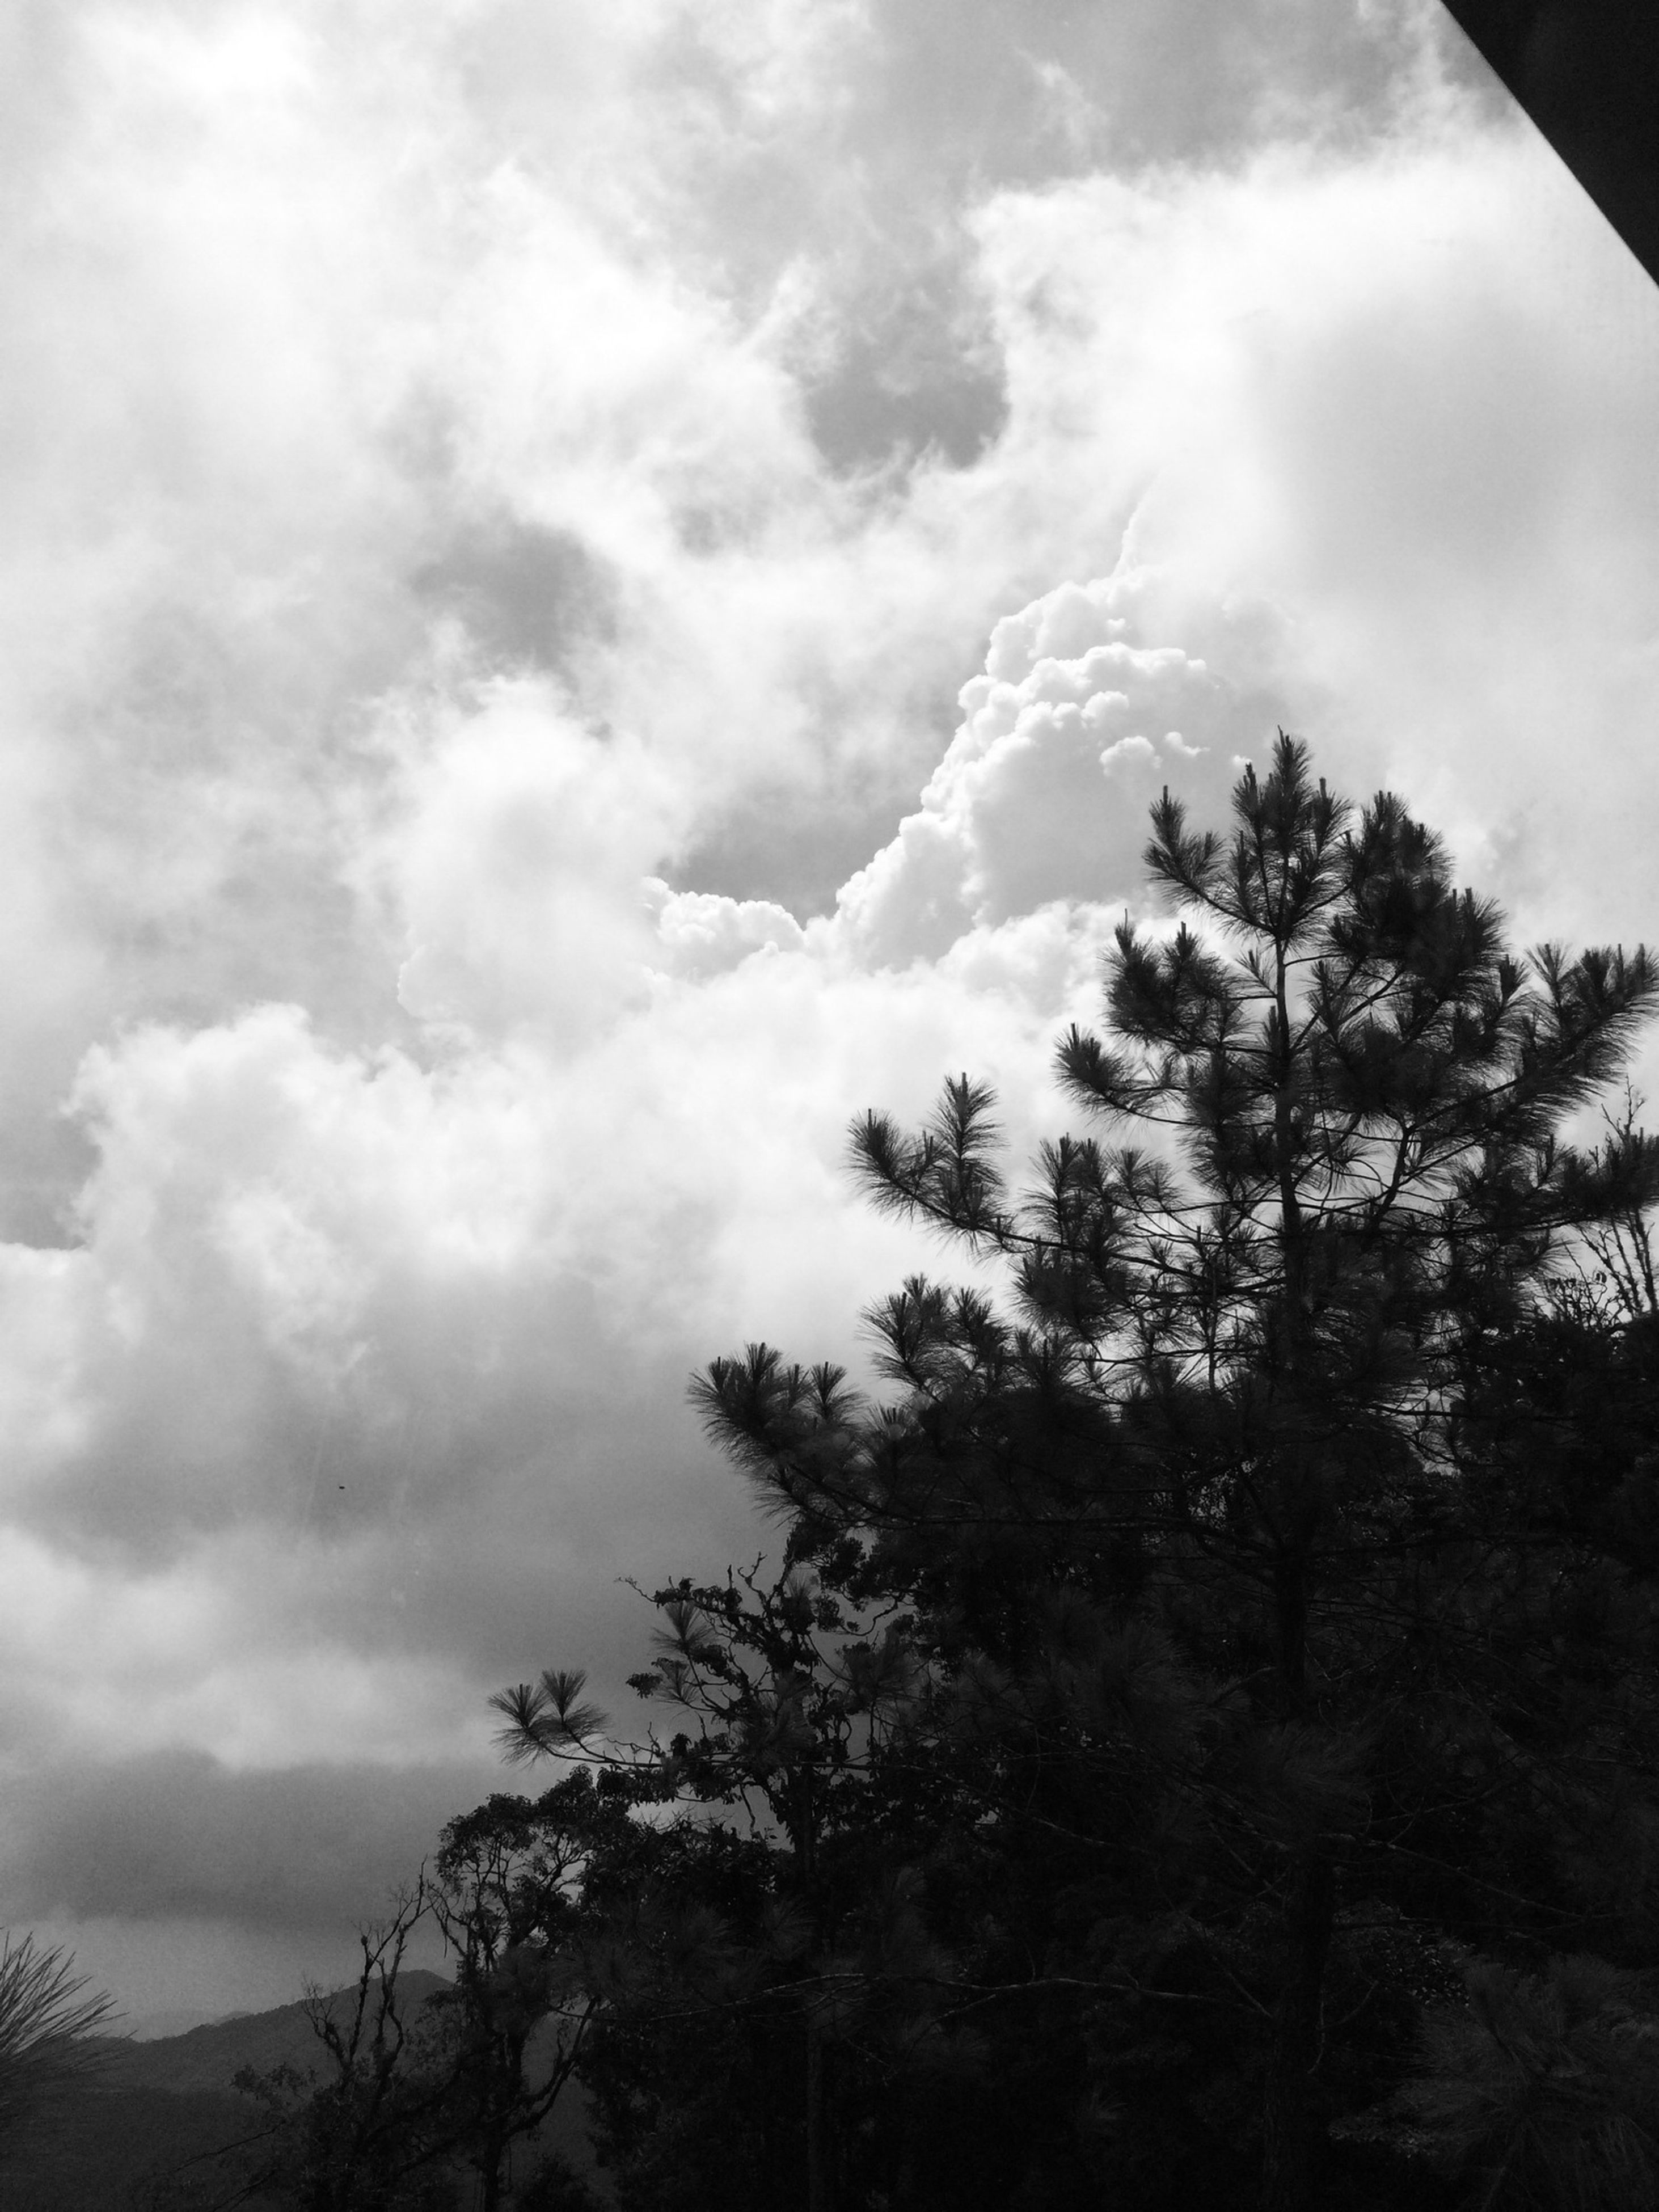 tree, sky, cloud - sky, tranquility, tranquil scene, scenics, beauty in nature, cloudy, low angle view, silhouette, nature, cloud, forest, day, growth, outdoors, idyllic, no people, non-urban scene, landscape